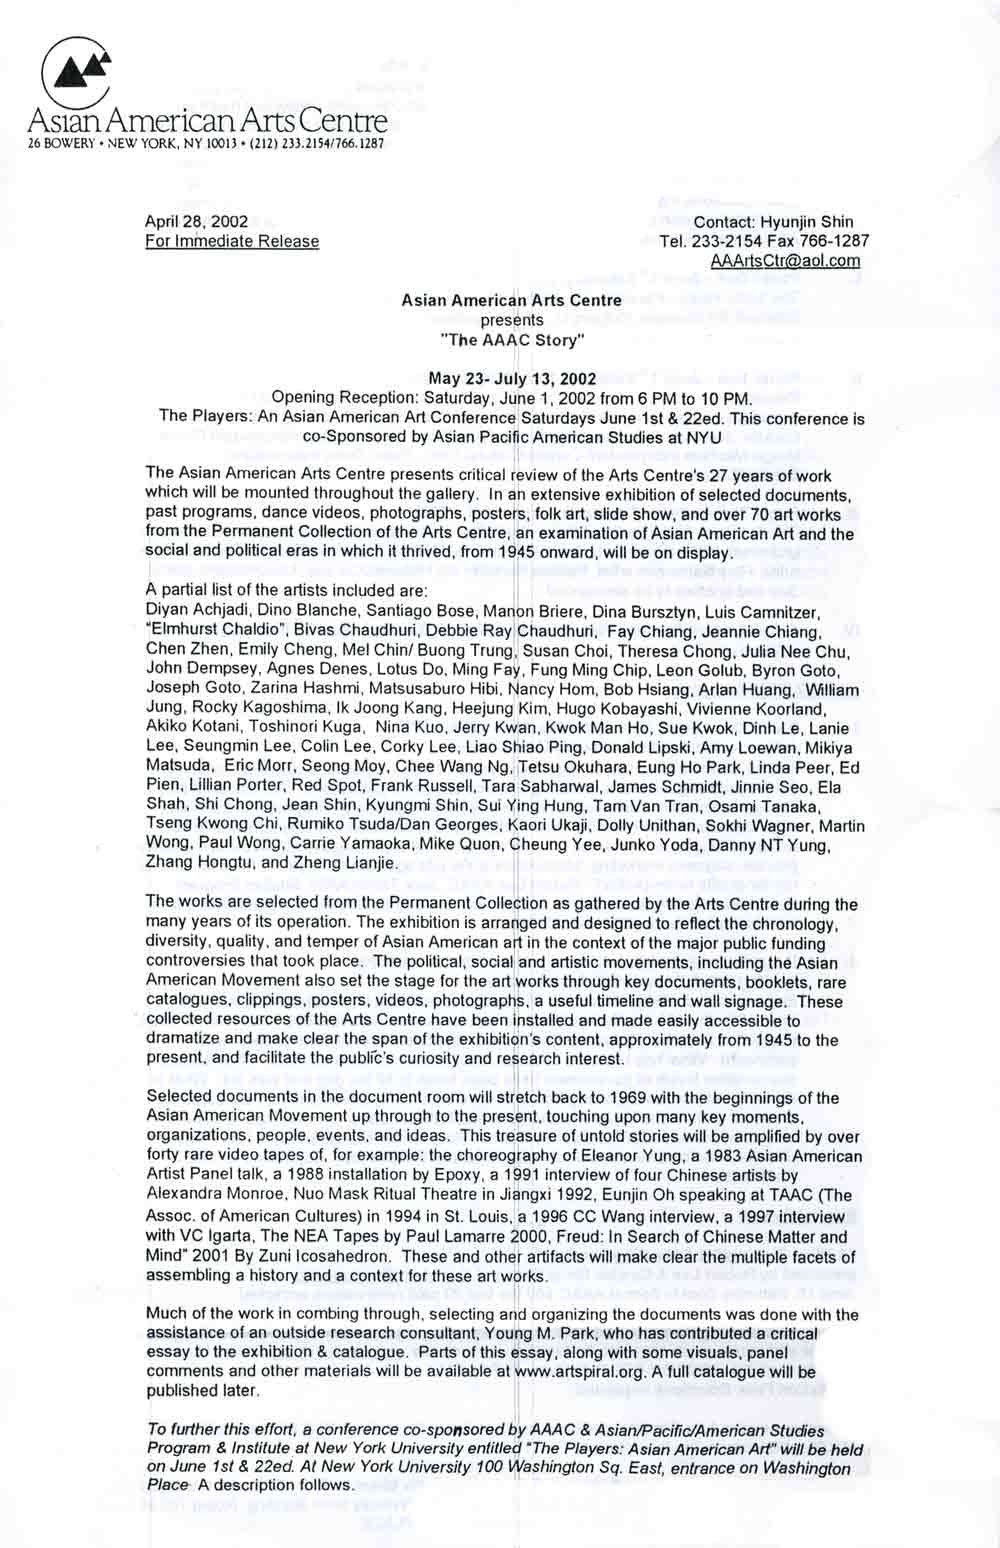 The AAAC Story, press release, pg 1